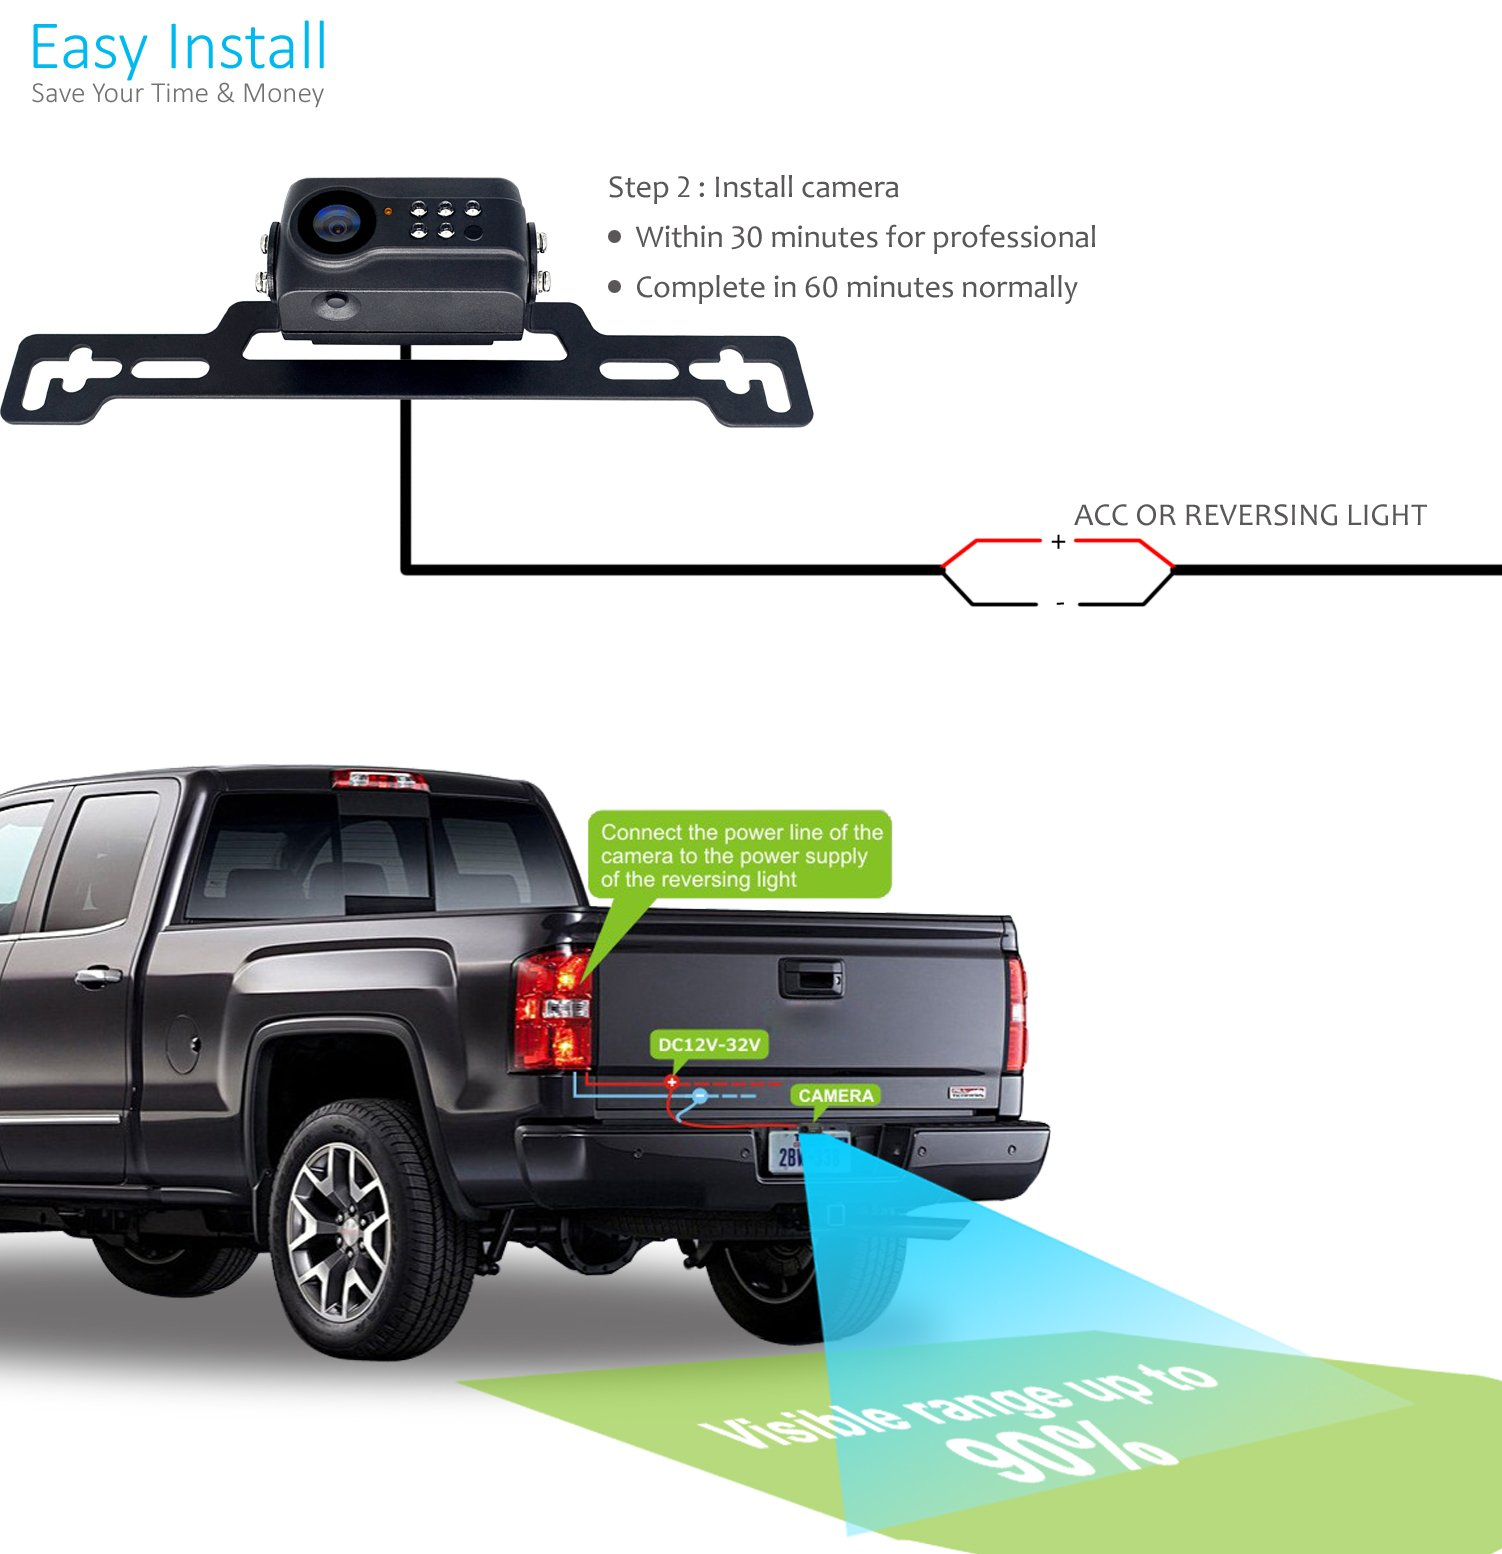 Wireless Backup Camera System, IP69K Waterproof Wireless License Plate Rear View Camera, Night Vision and 4.3'' Wireless Mirror Monitor for Cars, Trailer, RV, Pickup Trucks, Cargo Vans, etc. by yuwei (Image #2)